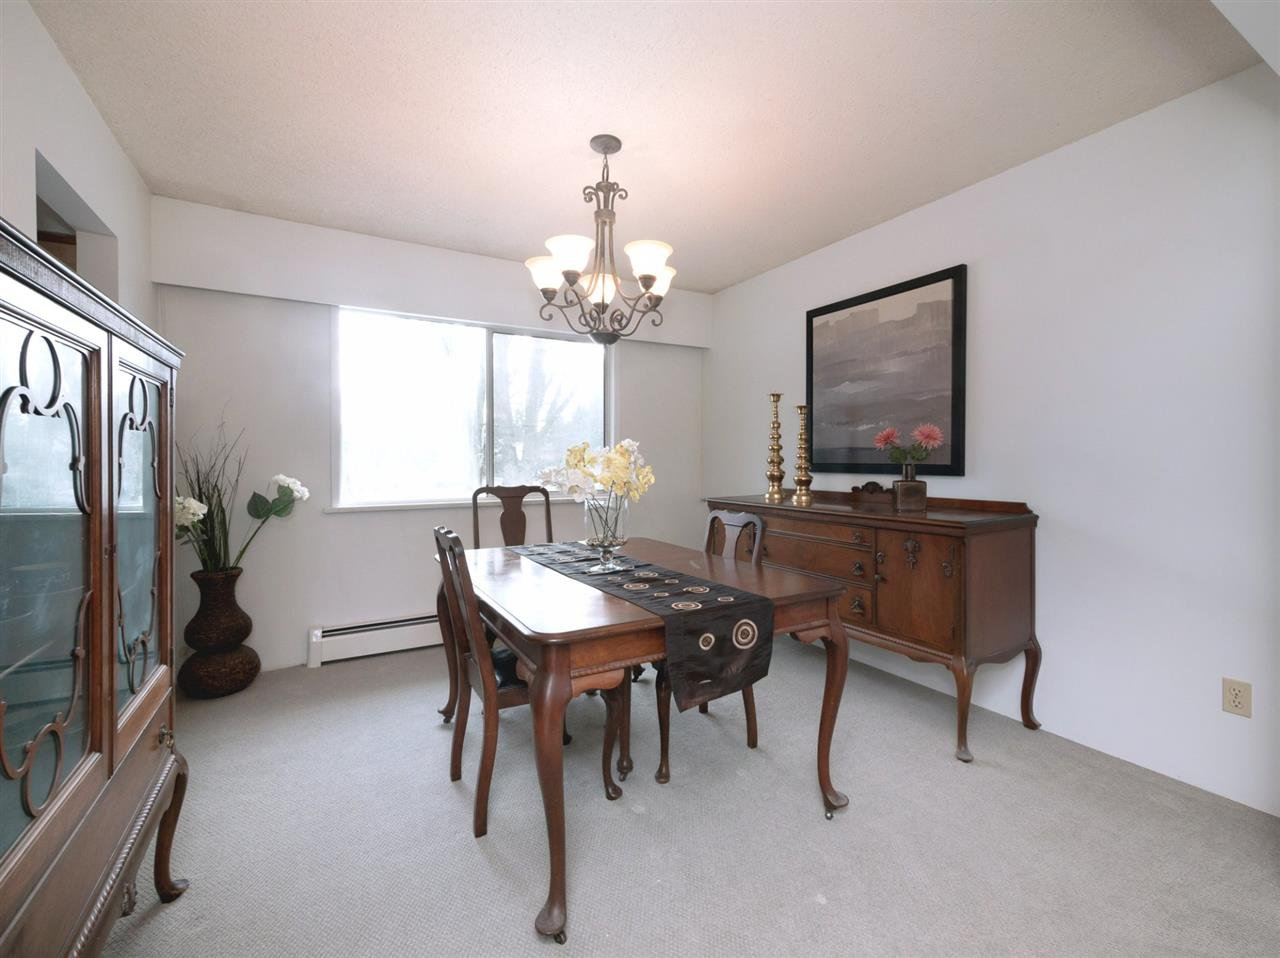 Photo 4: Photos: 14202 110 Avenue in Surrey: Bolivar Heights House for sale (North Surrey)  : MLS®# R2238014